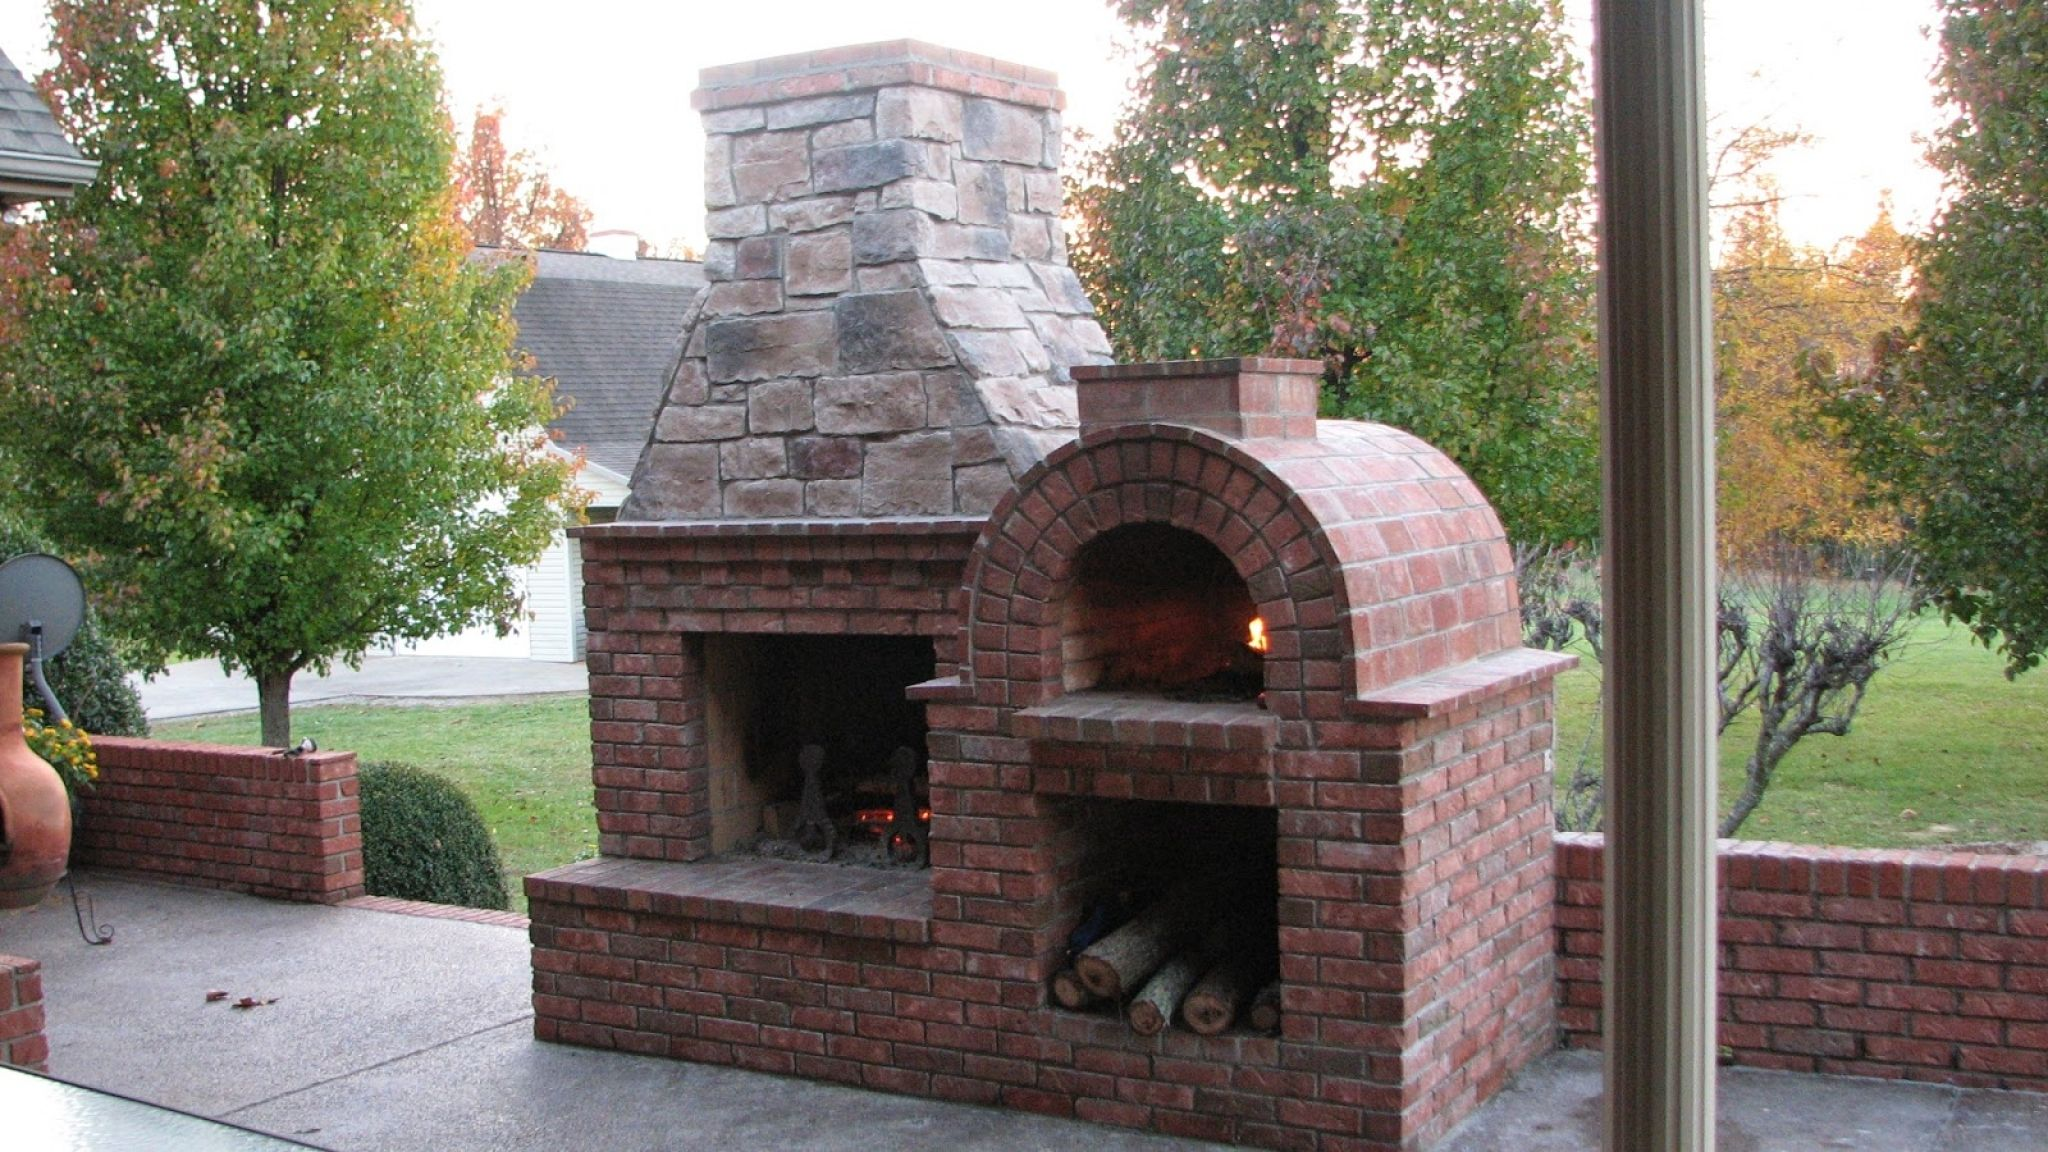 Pin by annora on home interior pinterest oven design and interiors